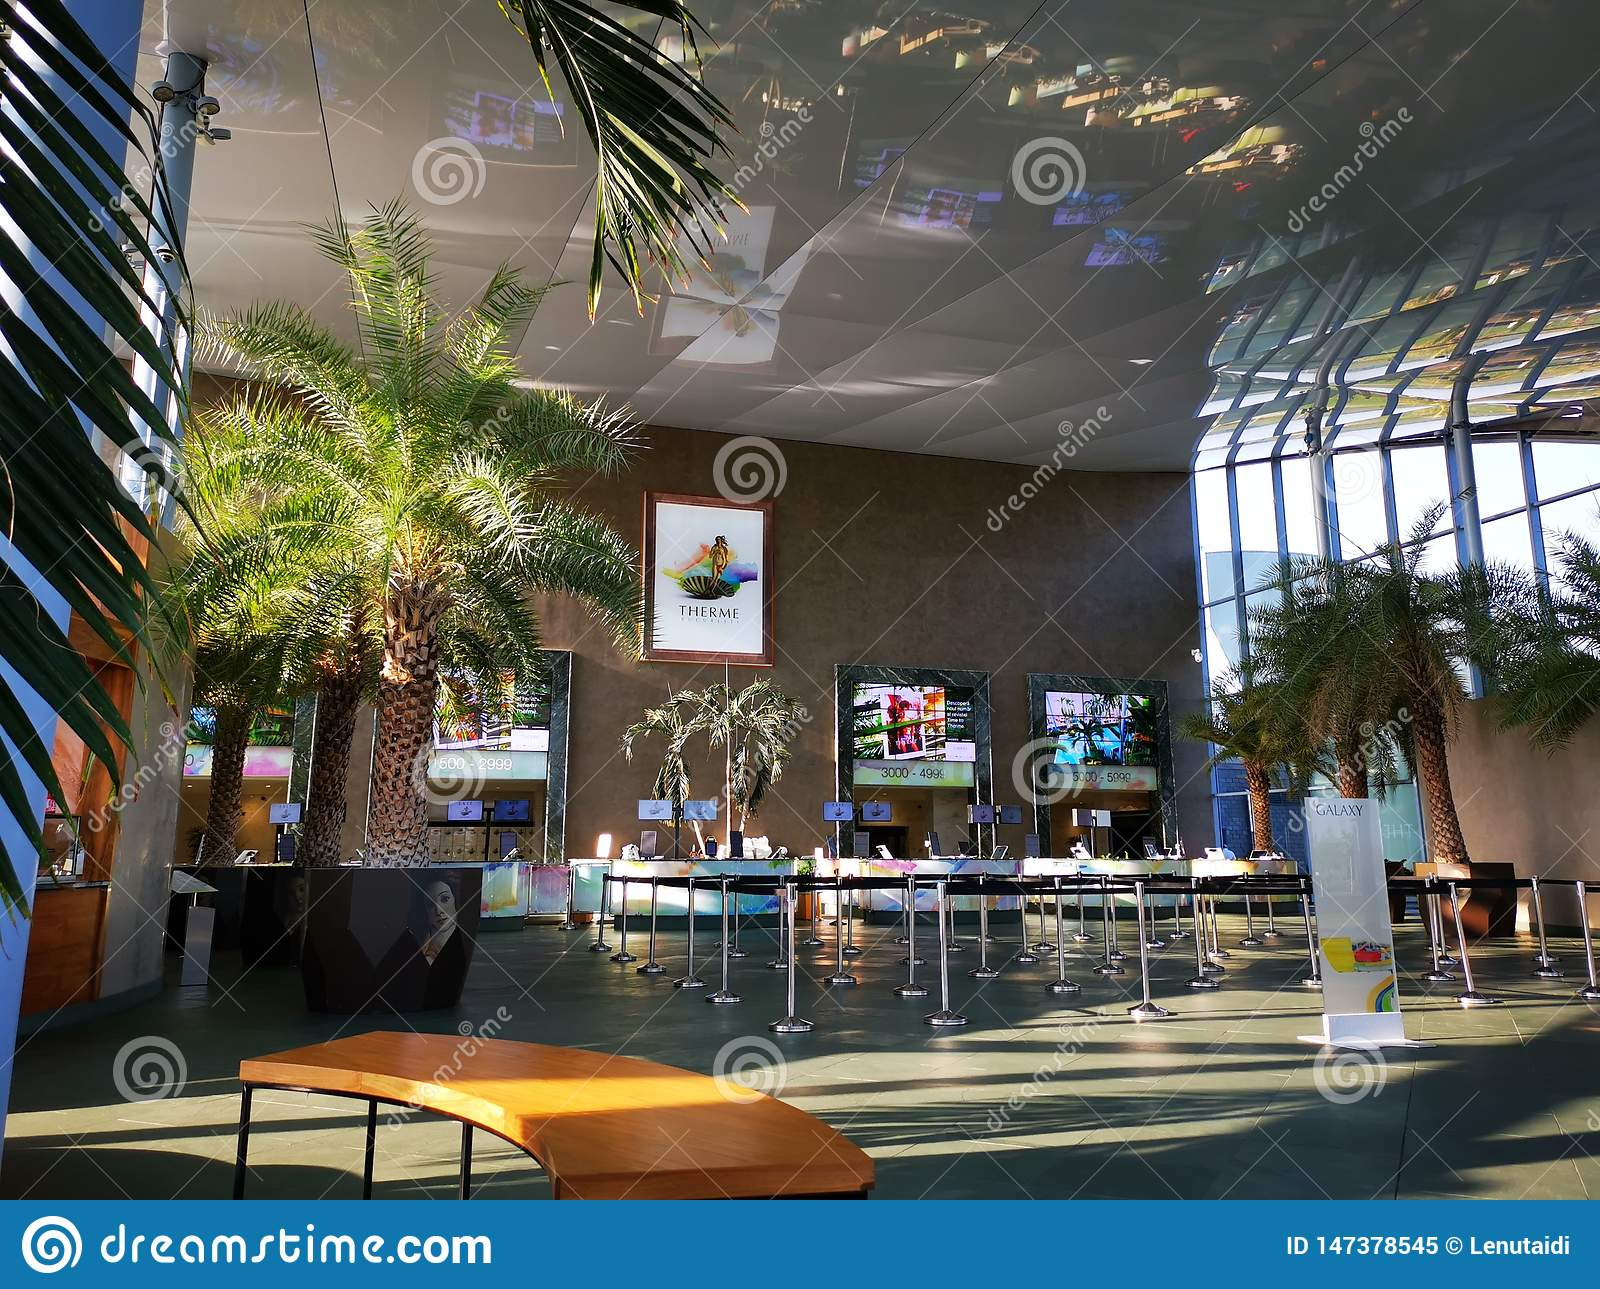 Therme Bucharest, Romania - entry indoor